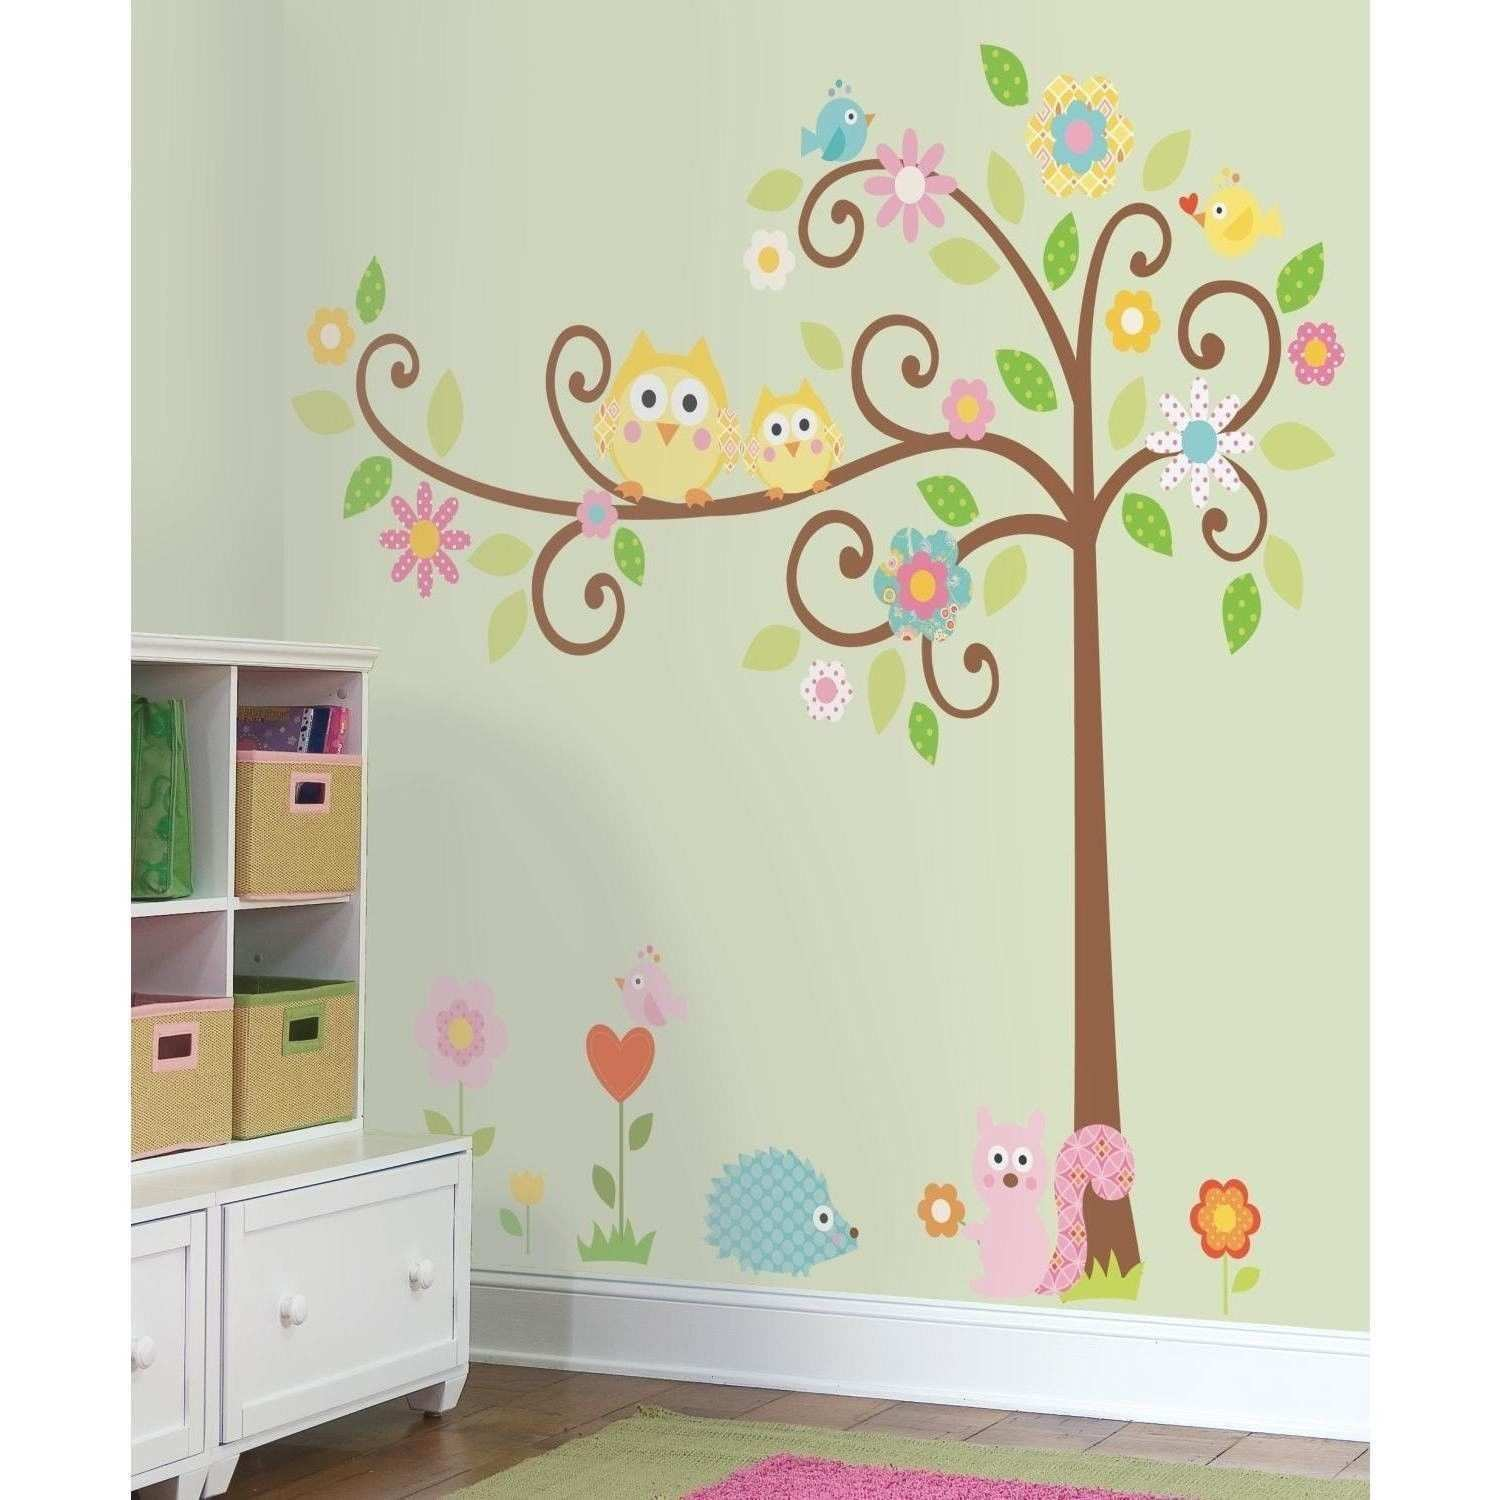 32 New Full Wall Mural Decals